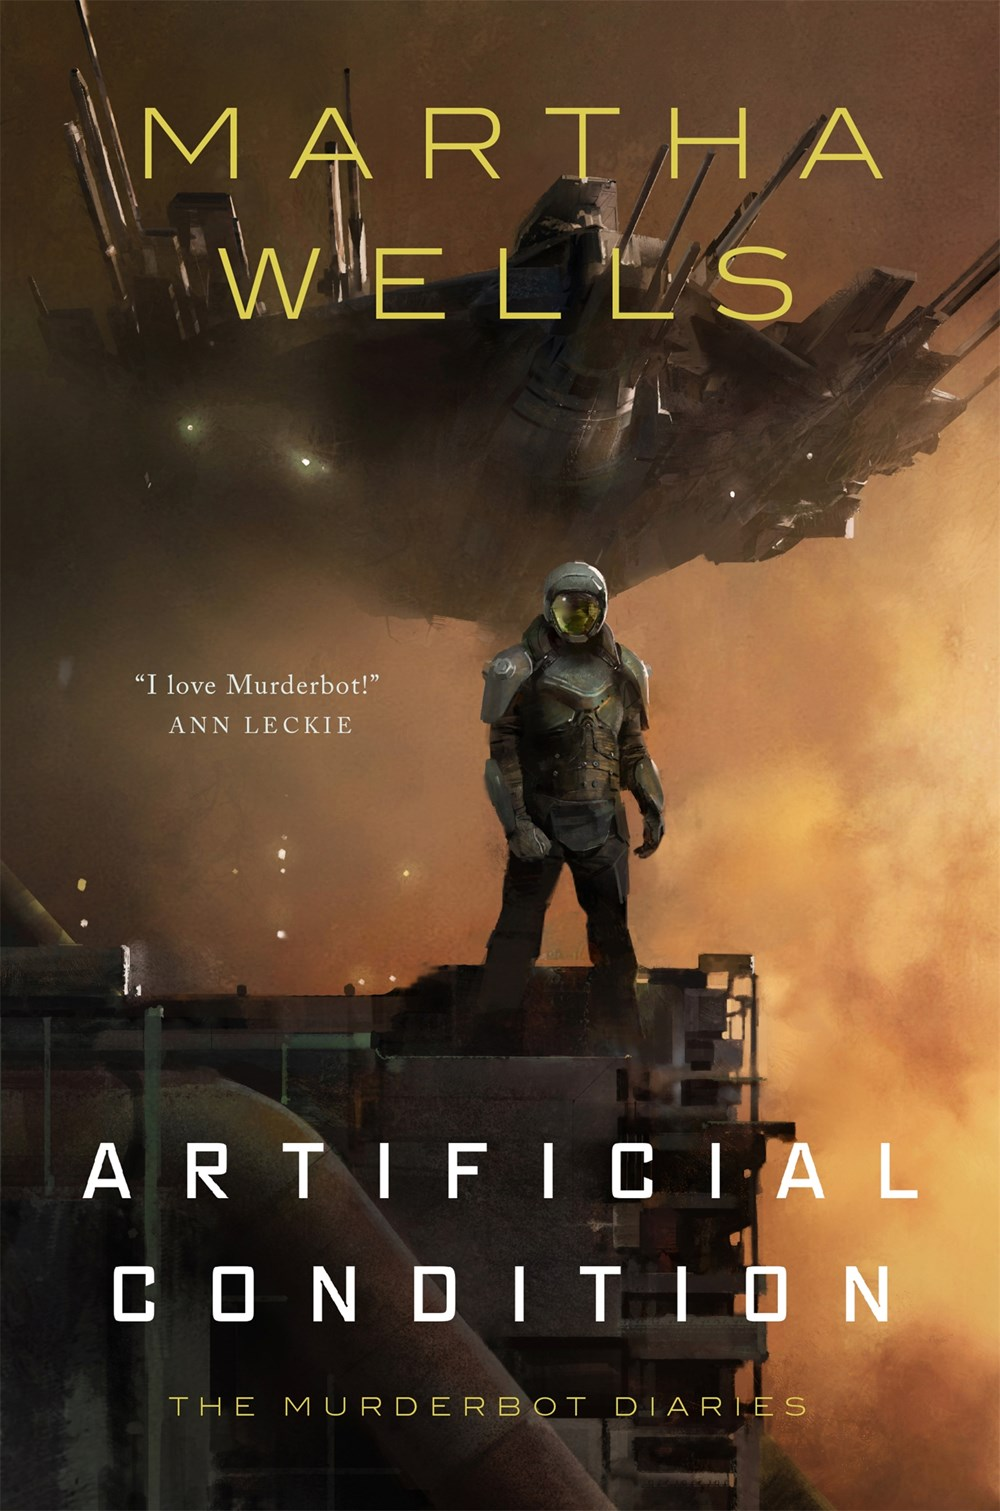 Book Review: Artificial Condition (Murderbot Diaries #2), by Martha Wells